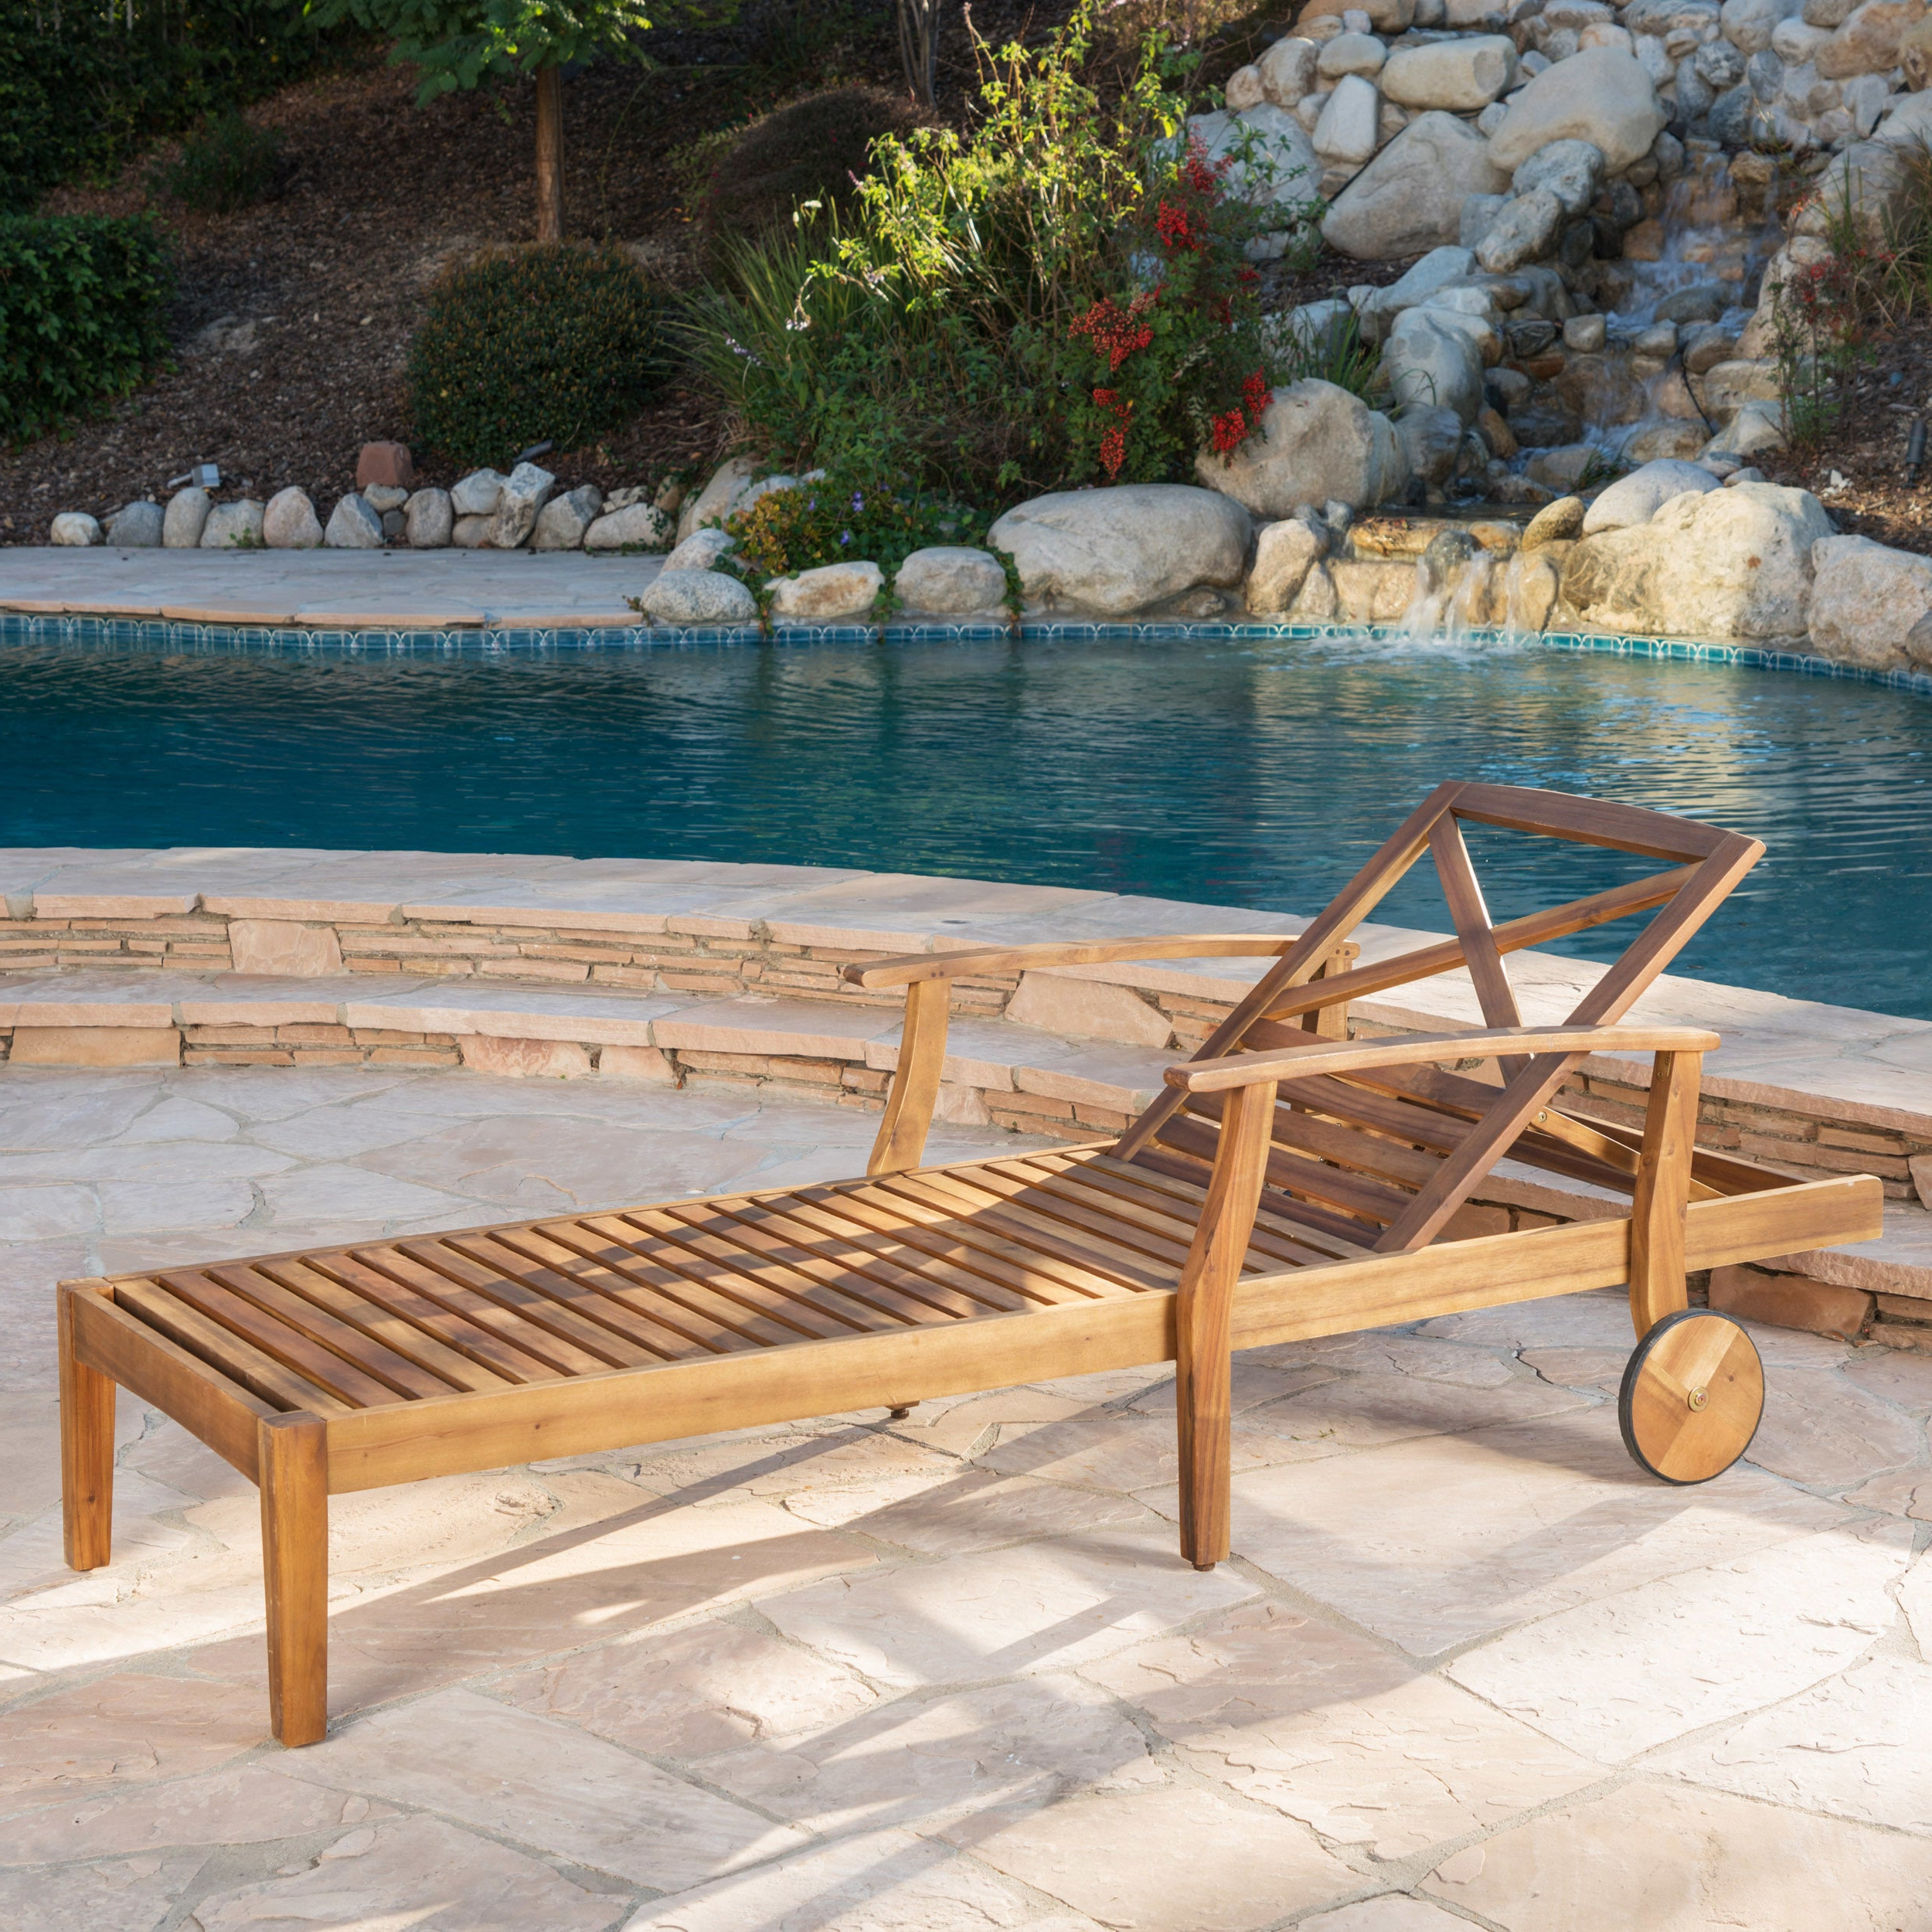 Perla Outdoor Acacia Wood Chaise Lounge With Cushionchristopher Knight  Home Inside Latest Perla Outdoor Acacia Wood Chaise Lounge With Cushion (Gallery 9 of 25)